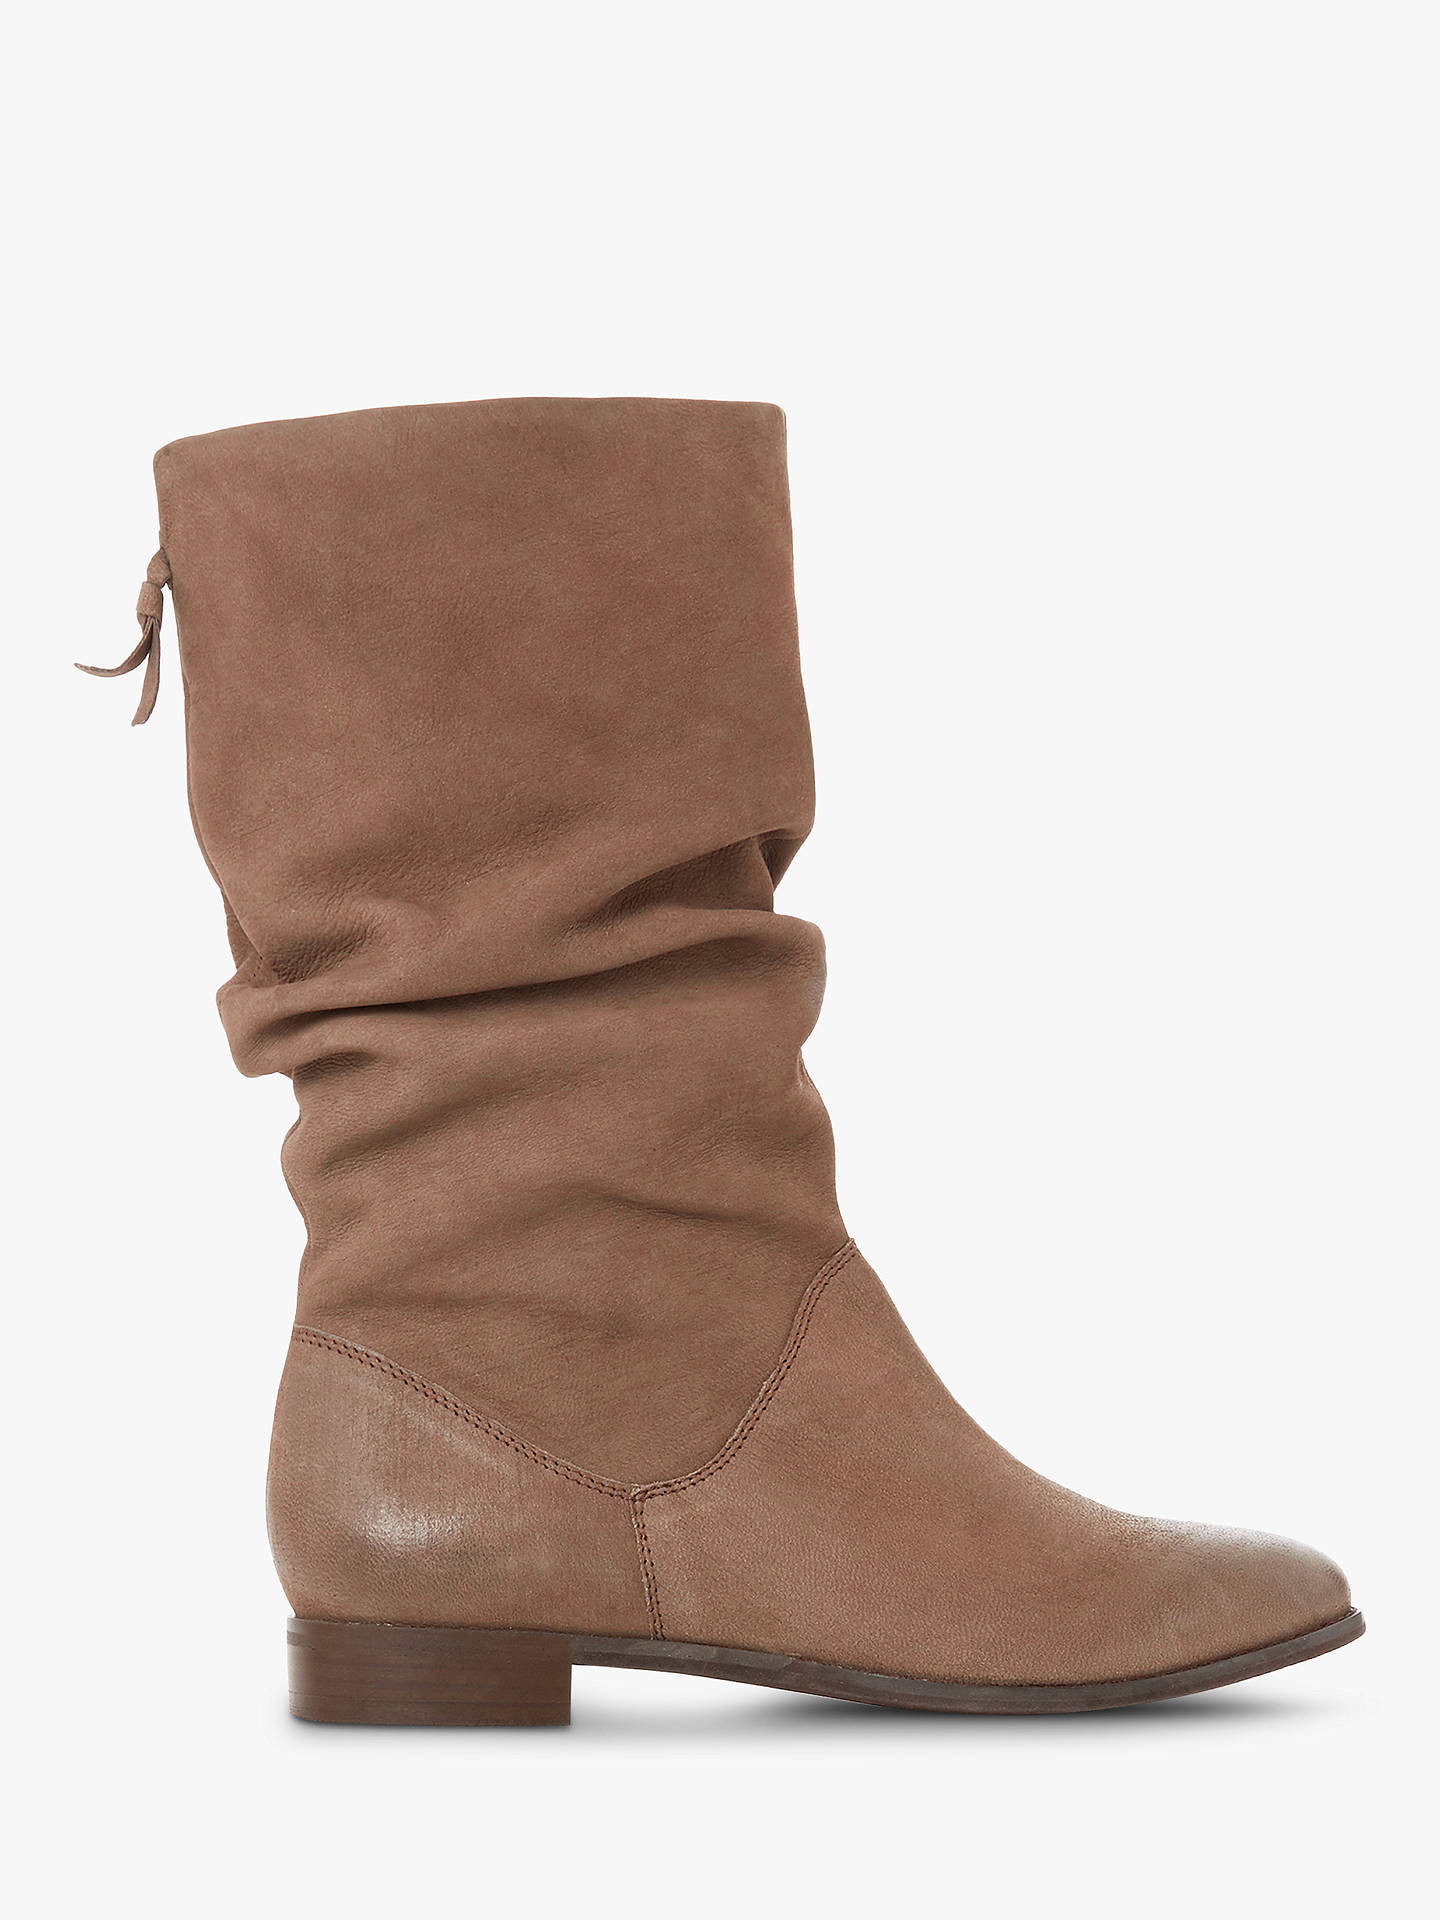 978713dc3da54 Buy Dune Rosalindd Calf Boots, Taupe Leather, 2 Online at johnlewis.com ...